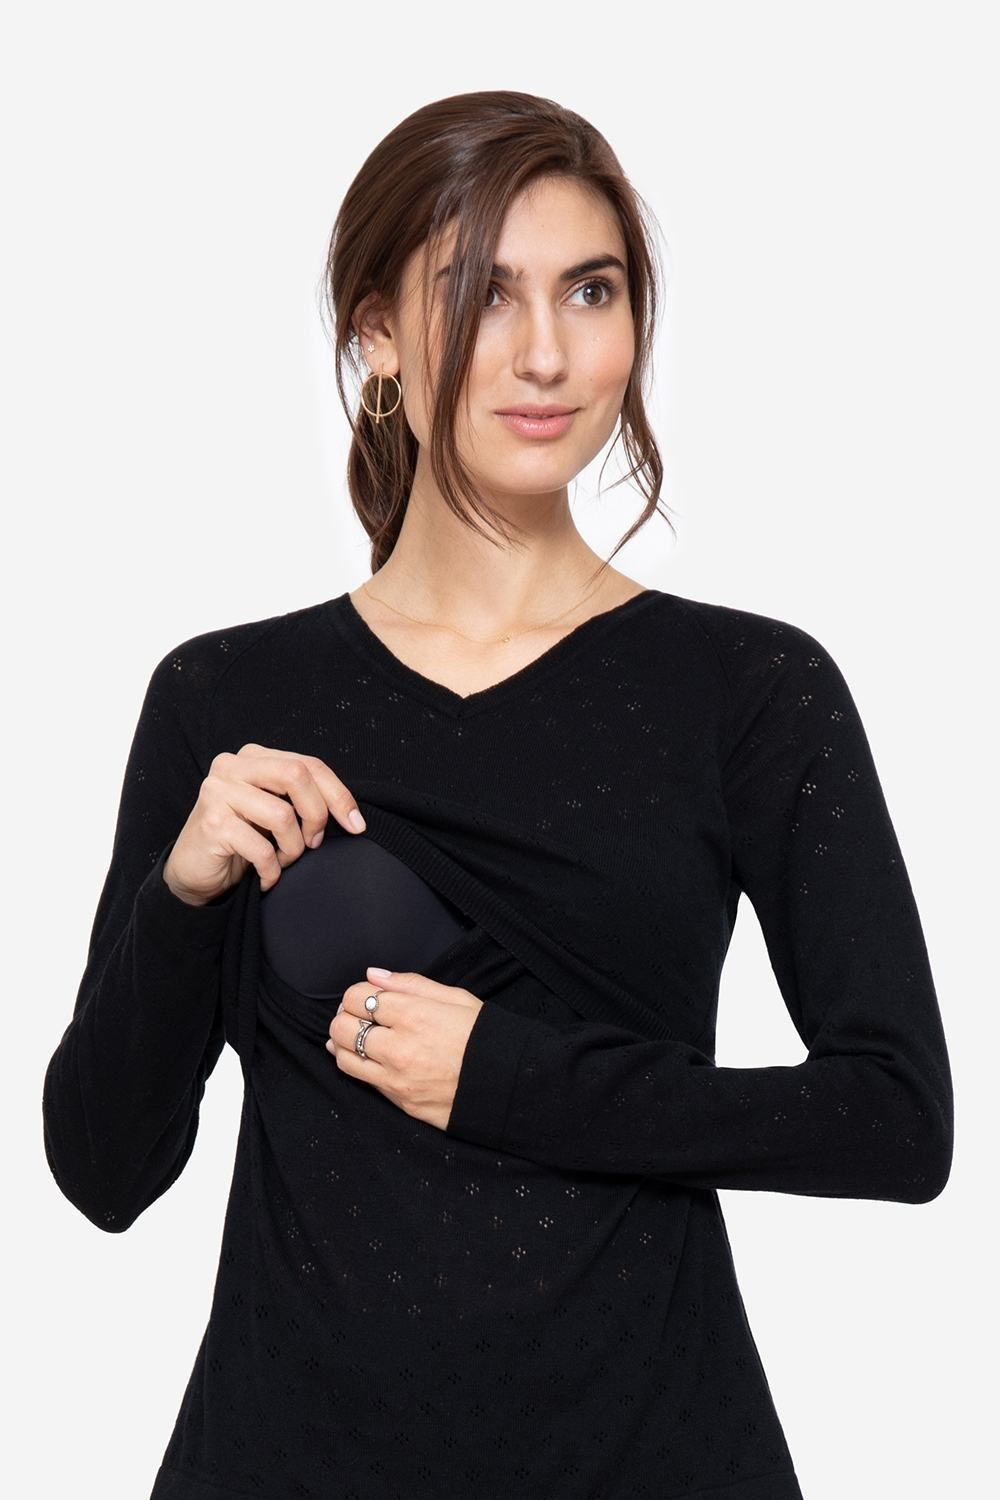 Black nursing jumper with V-neck in Organic cotton, with access for breastfeeding